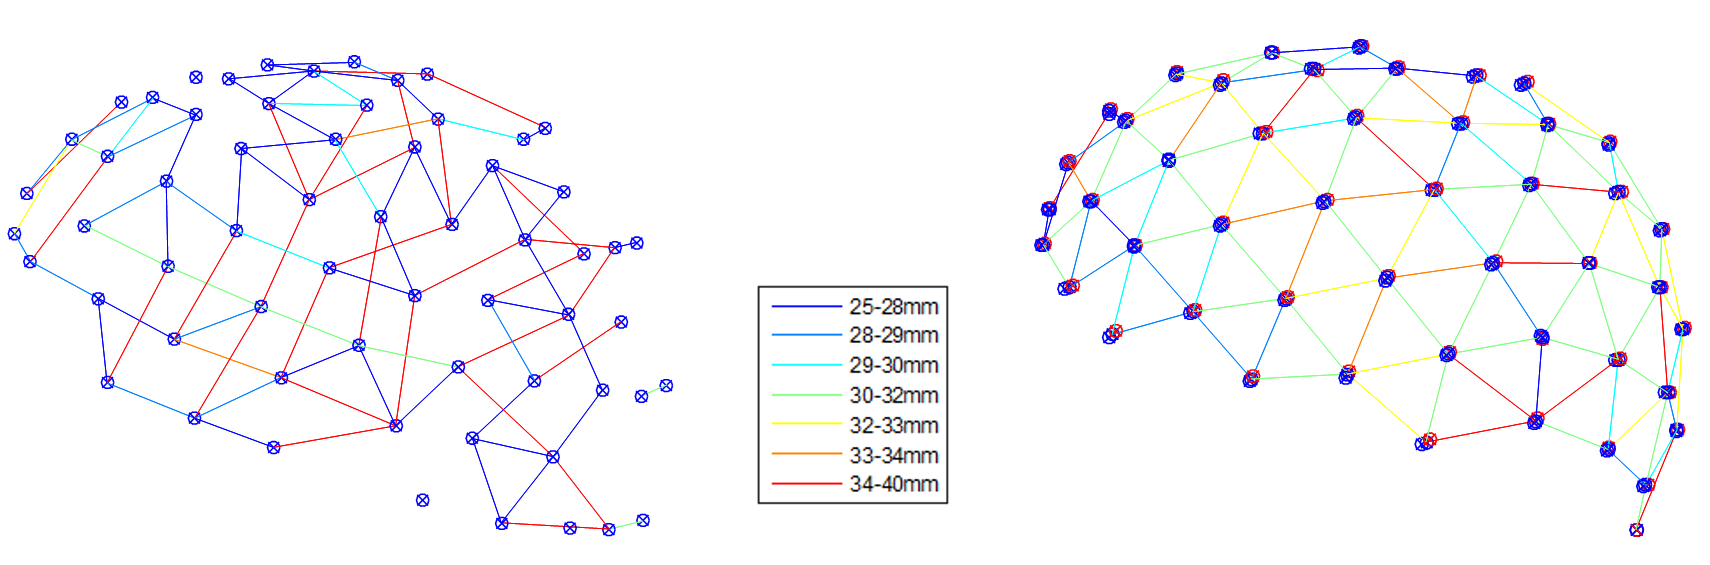 Figure 3 On the left side is the digitalisation of the Easycap grid, the right side is the digitalisation of the new Artinis optode grid for a specific cap size. Connection lines were ommitted for shorter distances than 25mm and longer distances than 40mm.